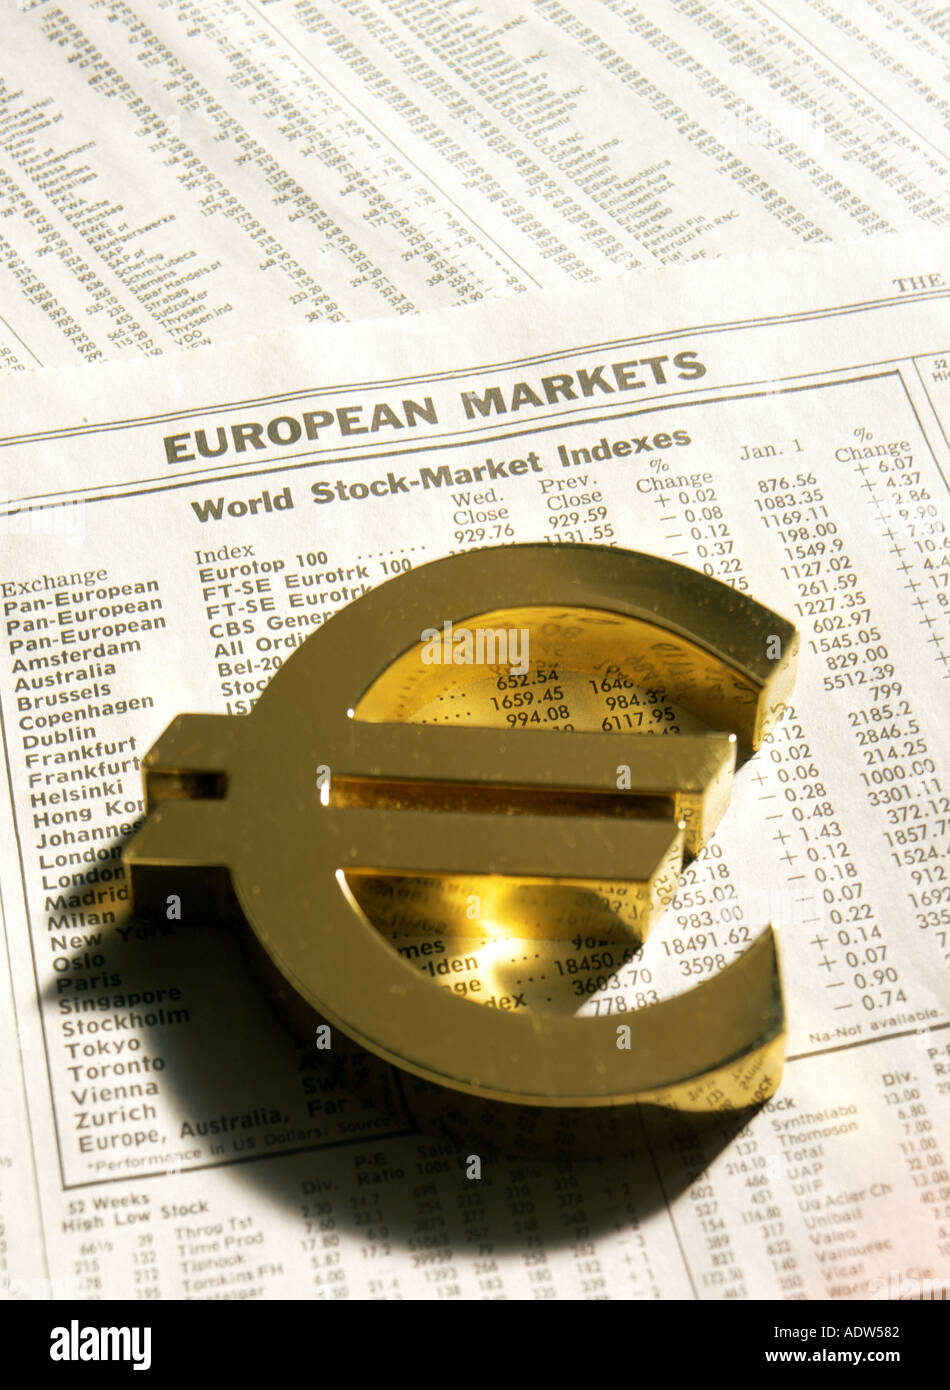 Golden euro currency logo on financial paper with world stock photo golden euro currency logo on financial paper with world stock markets indexes buycottarizona Gallery